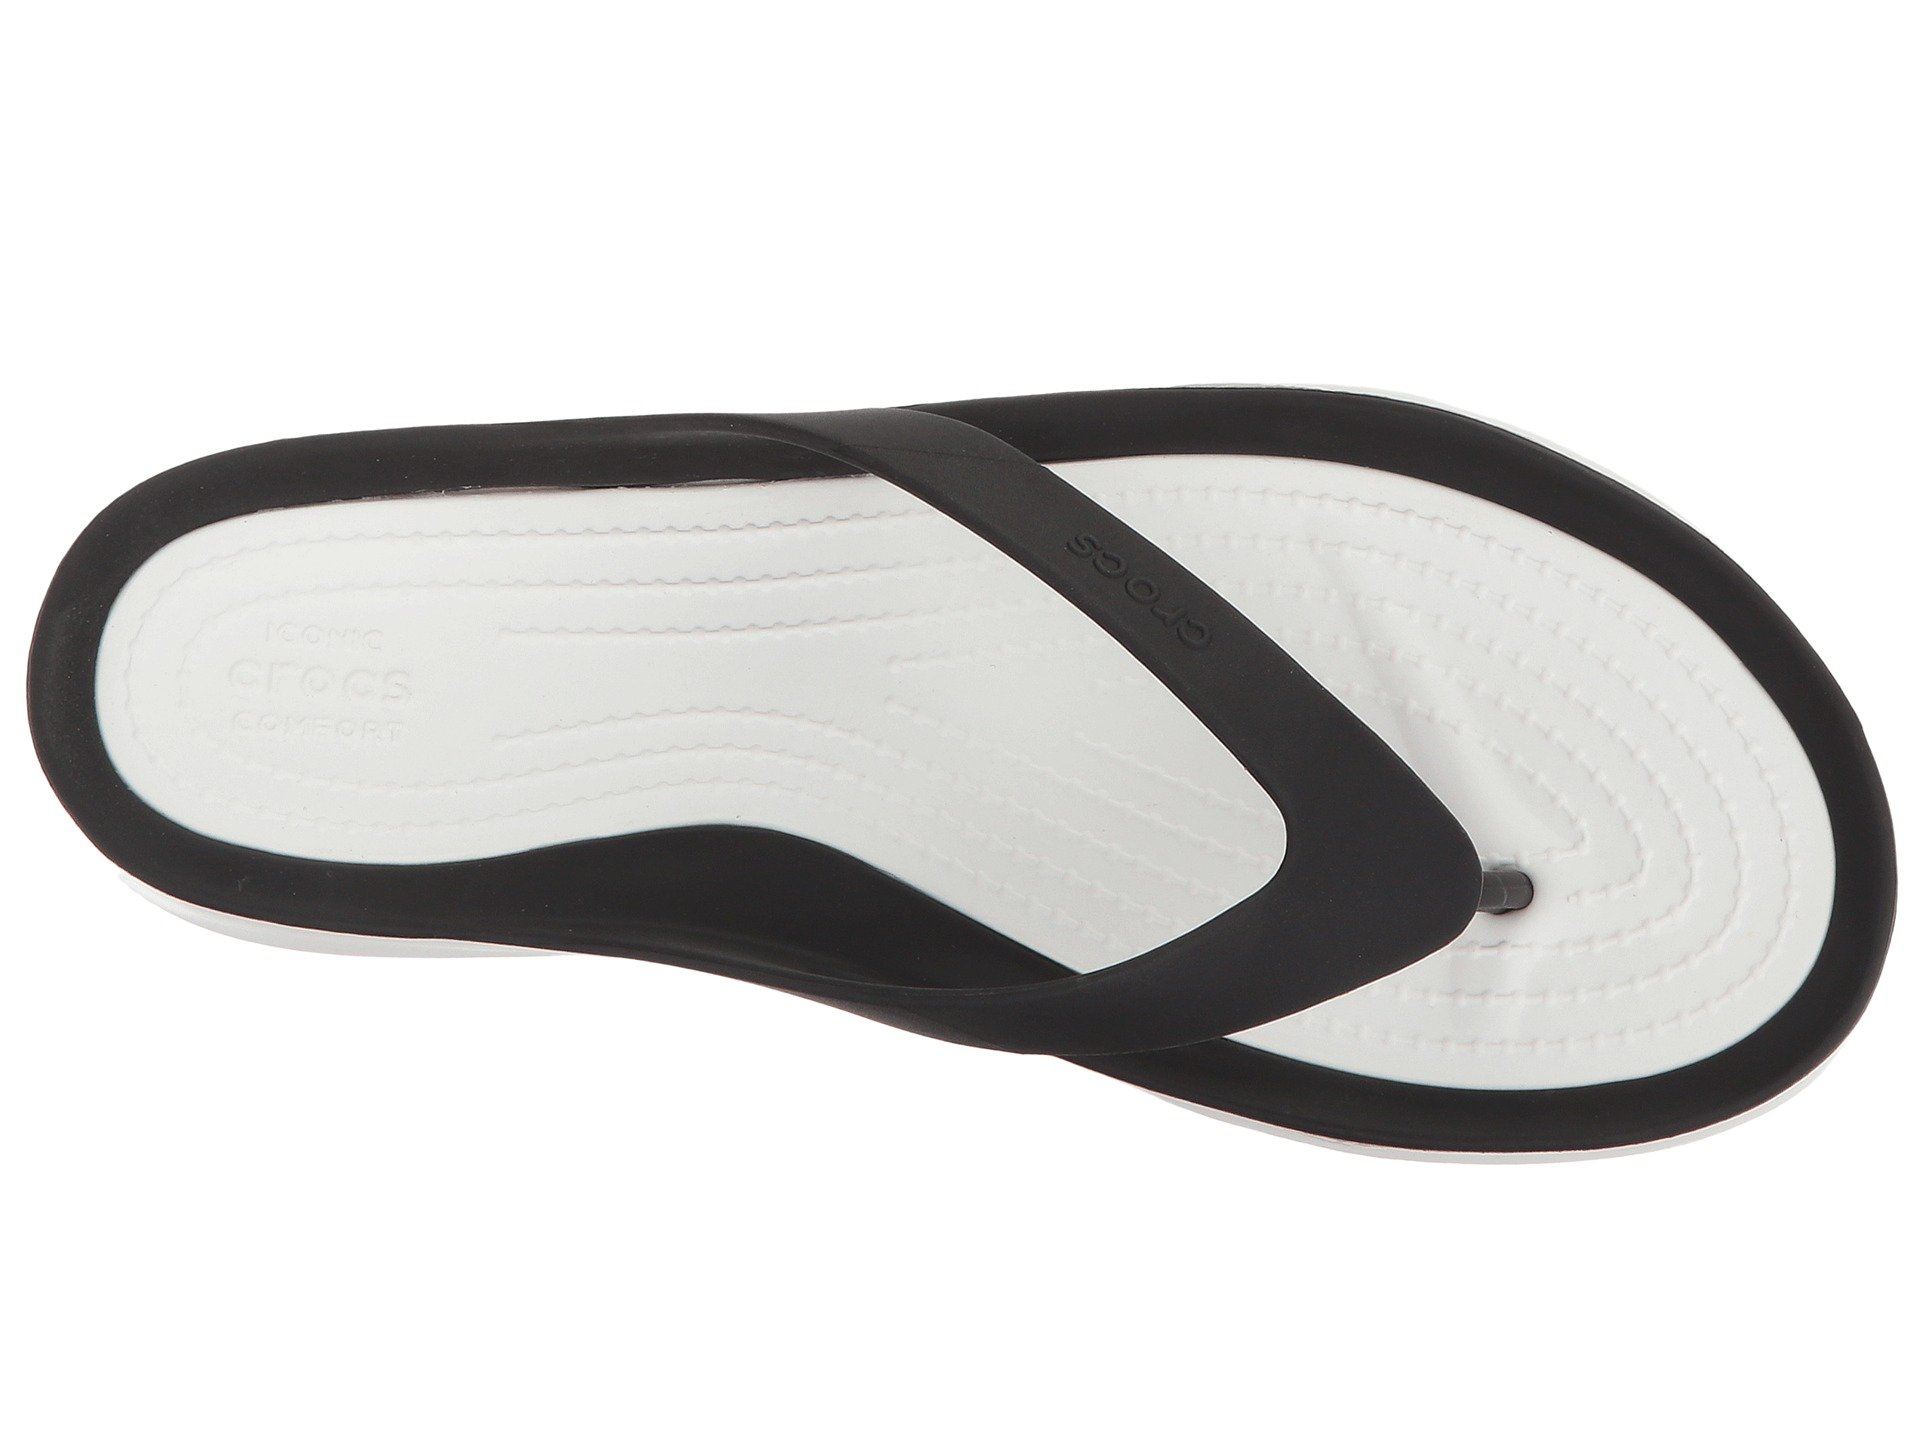 Crocs Swiftwater Black Flip Black Swiftwater Crocs Flip Flip white white Swiftwater white Black Crocs Crocs Swiftwater xU4wwEA